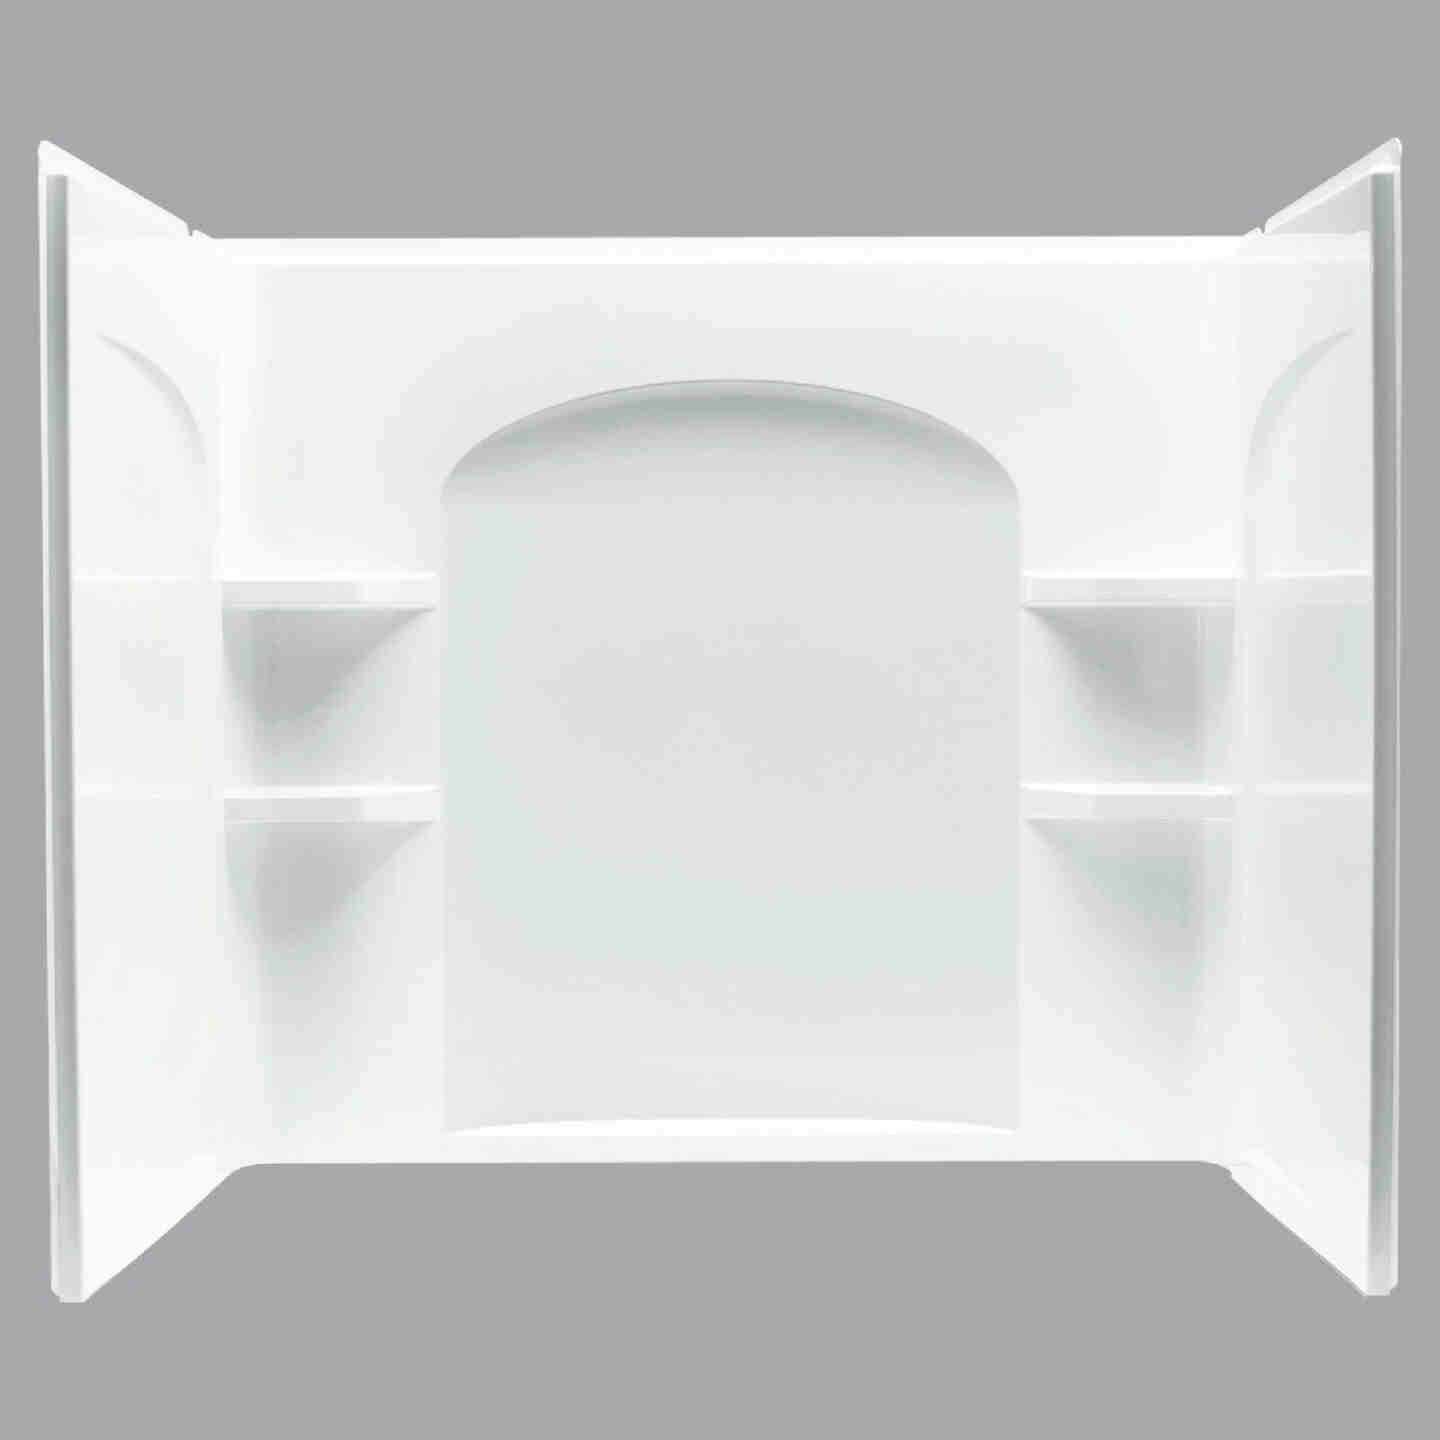 Sterling Ensemble 7122 Series 3-Piece 60 In. W x 33-1/4 In. D x 55-1/4 In. H Tub Wall Kit in White Image 1